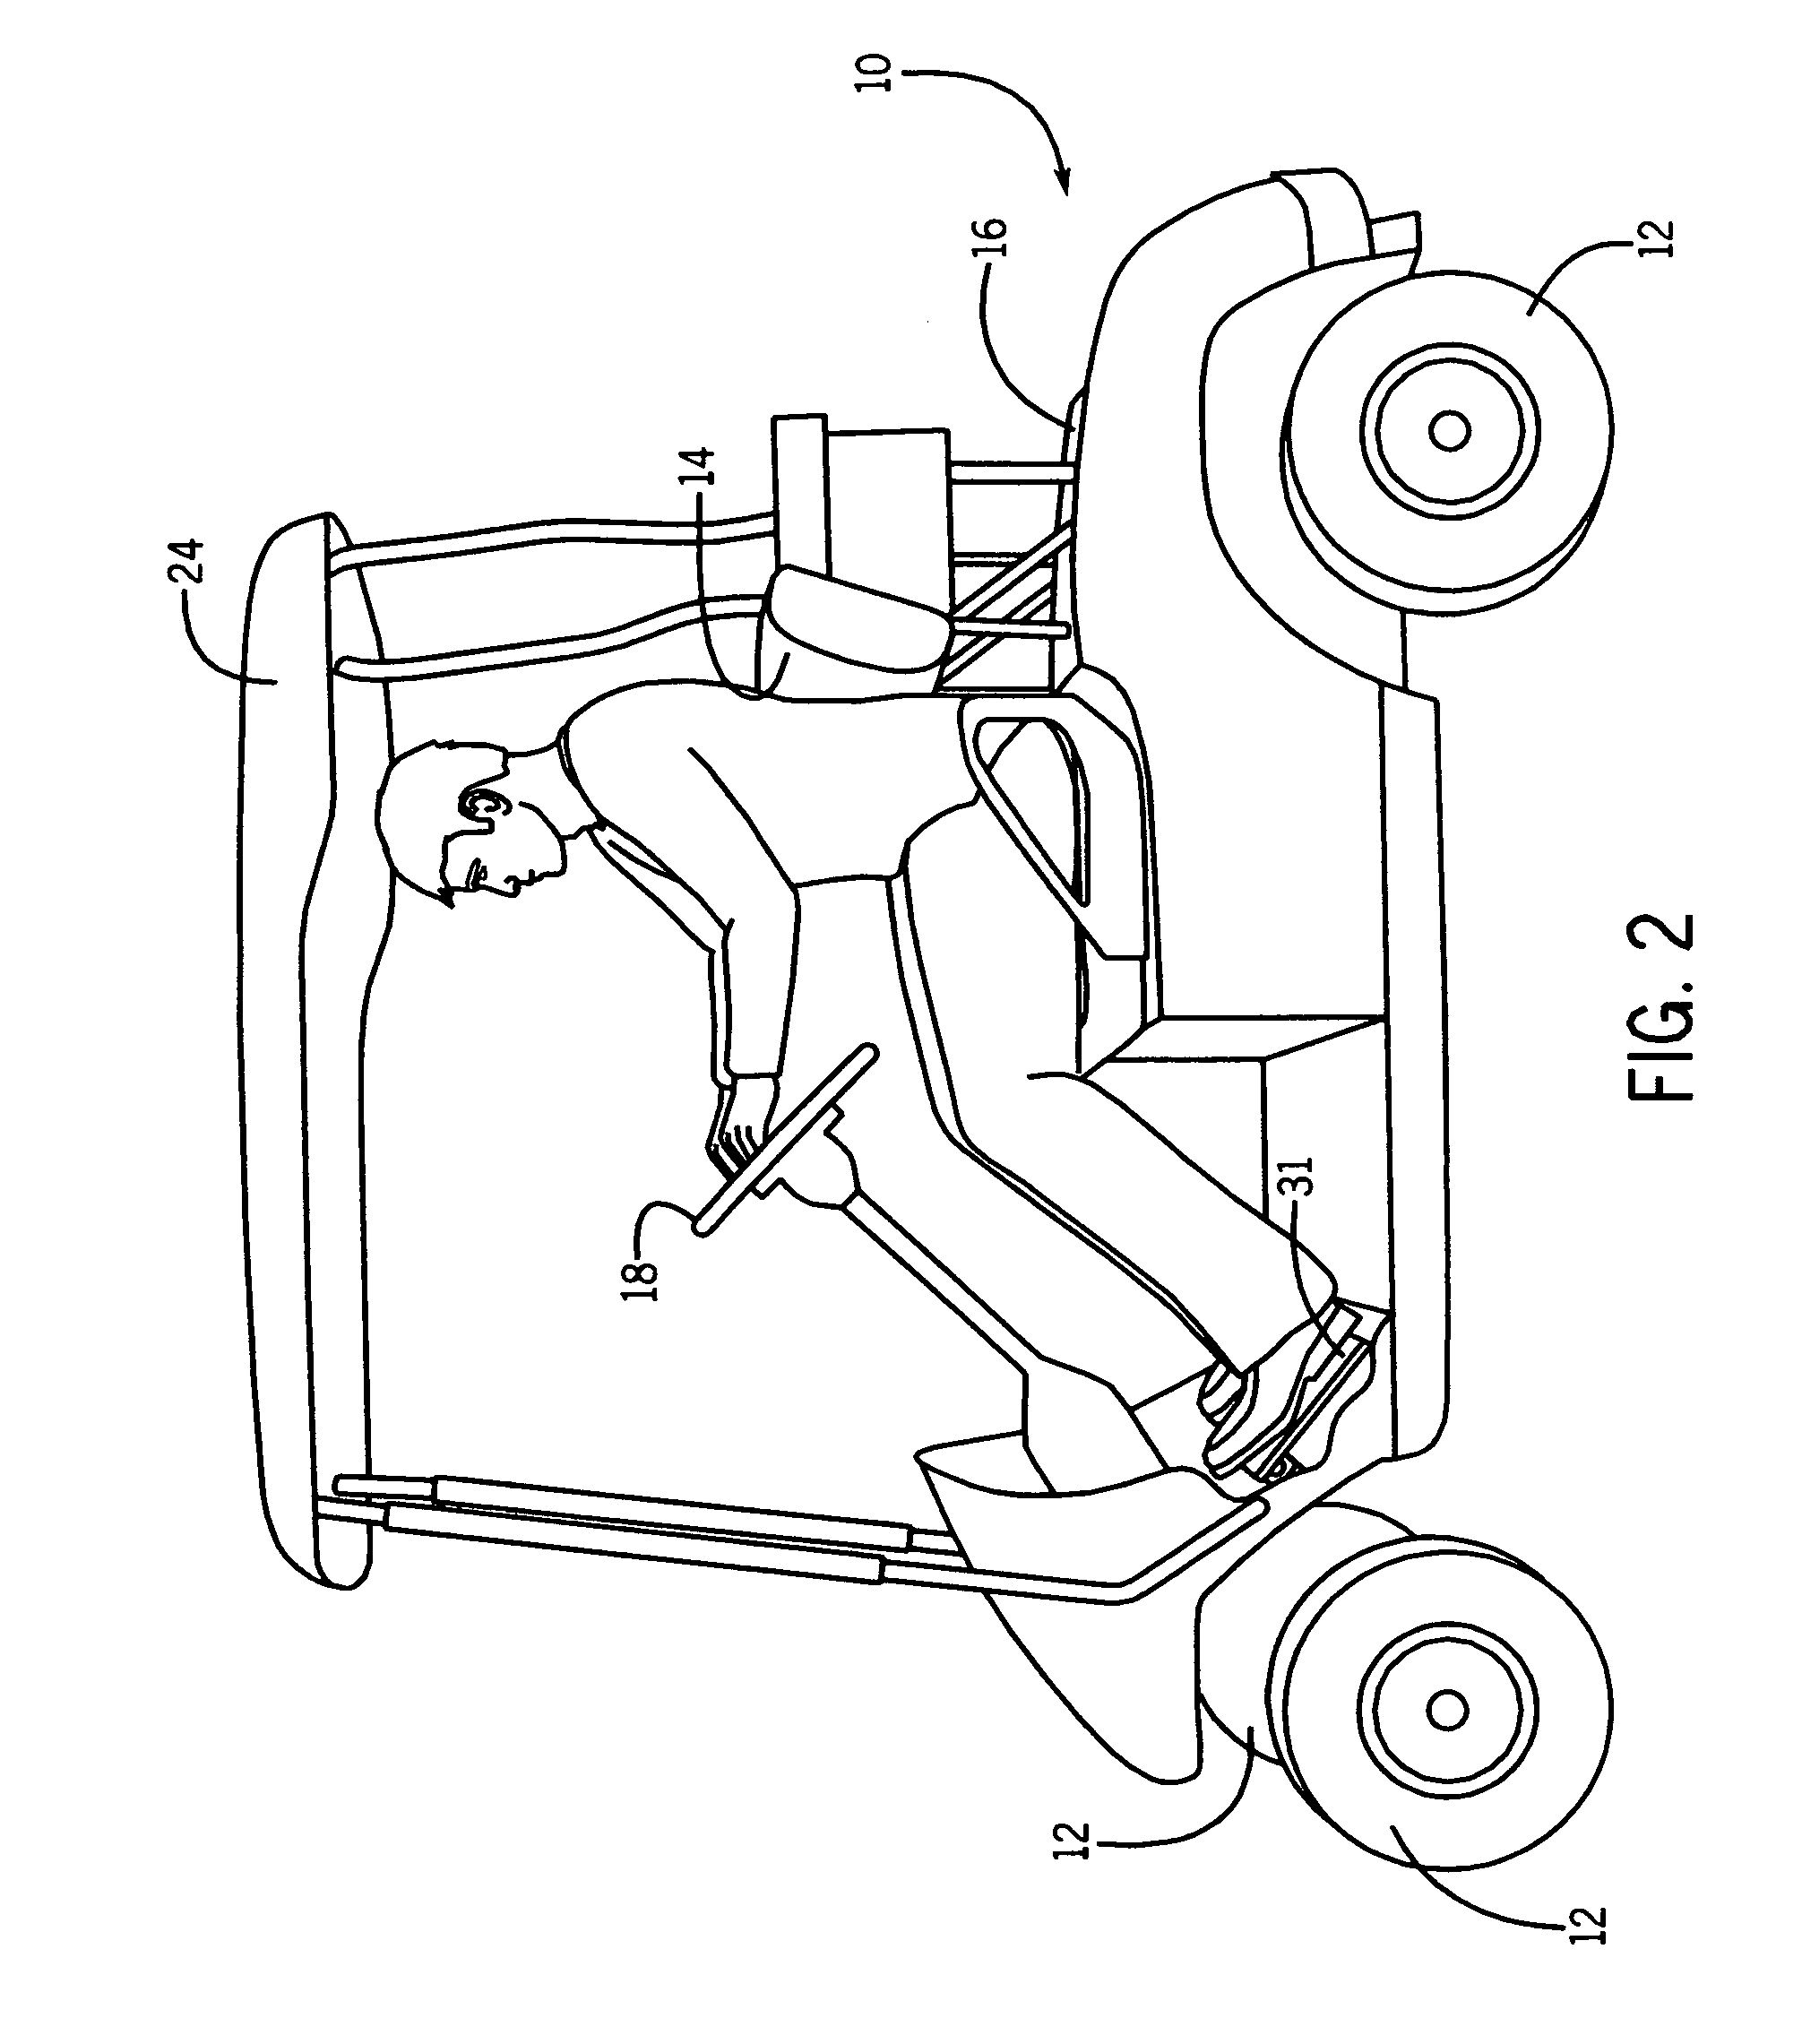 patent us20120205177 - golf cart safety apparatus